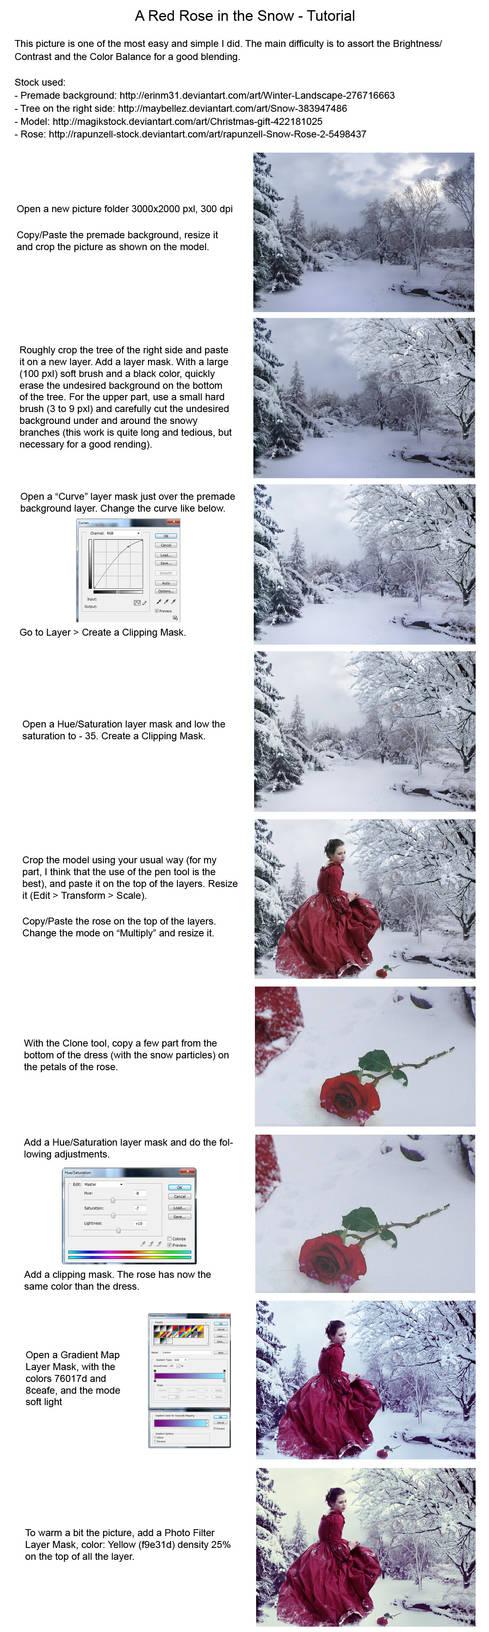 Tutorial Red Rose in the Snow